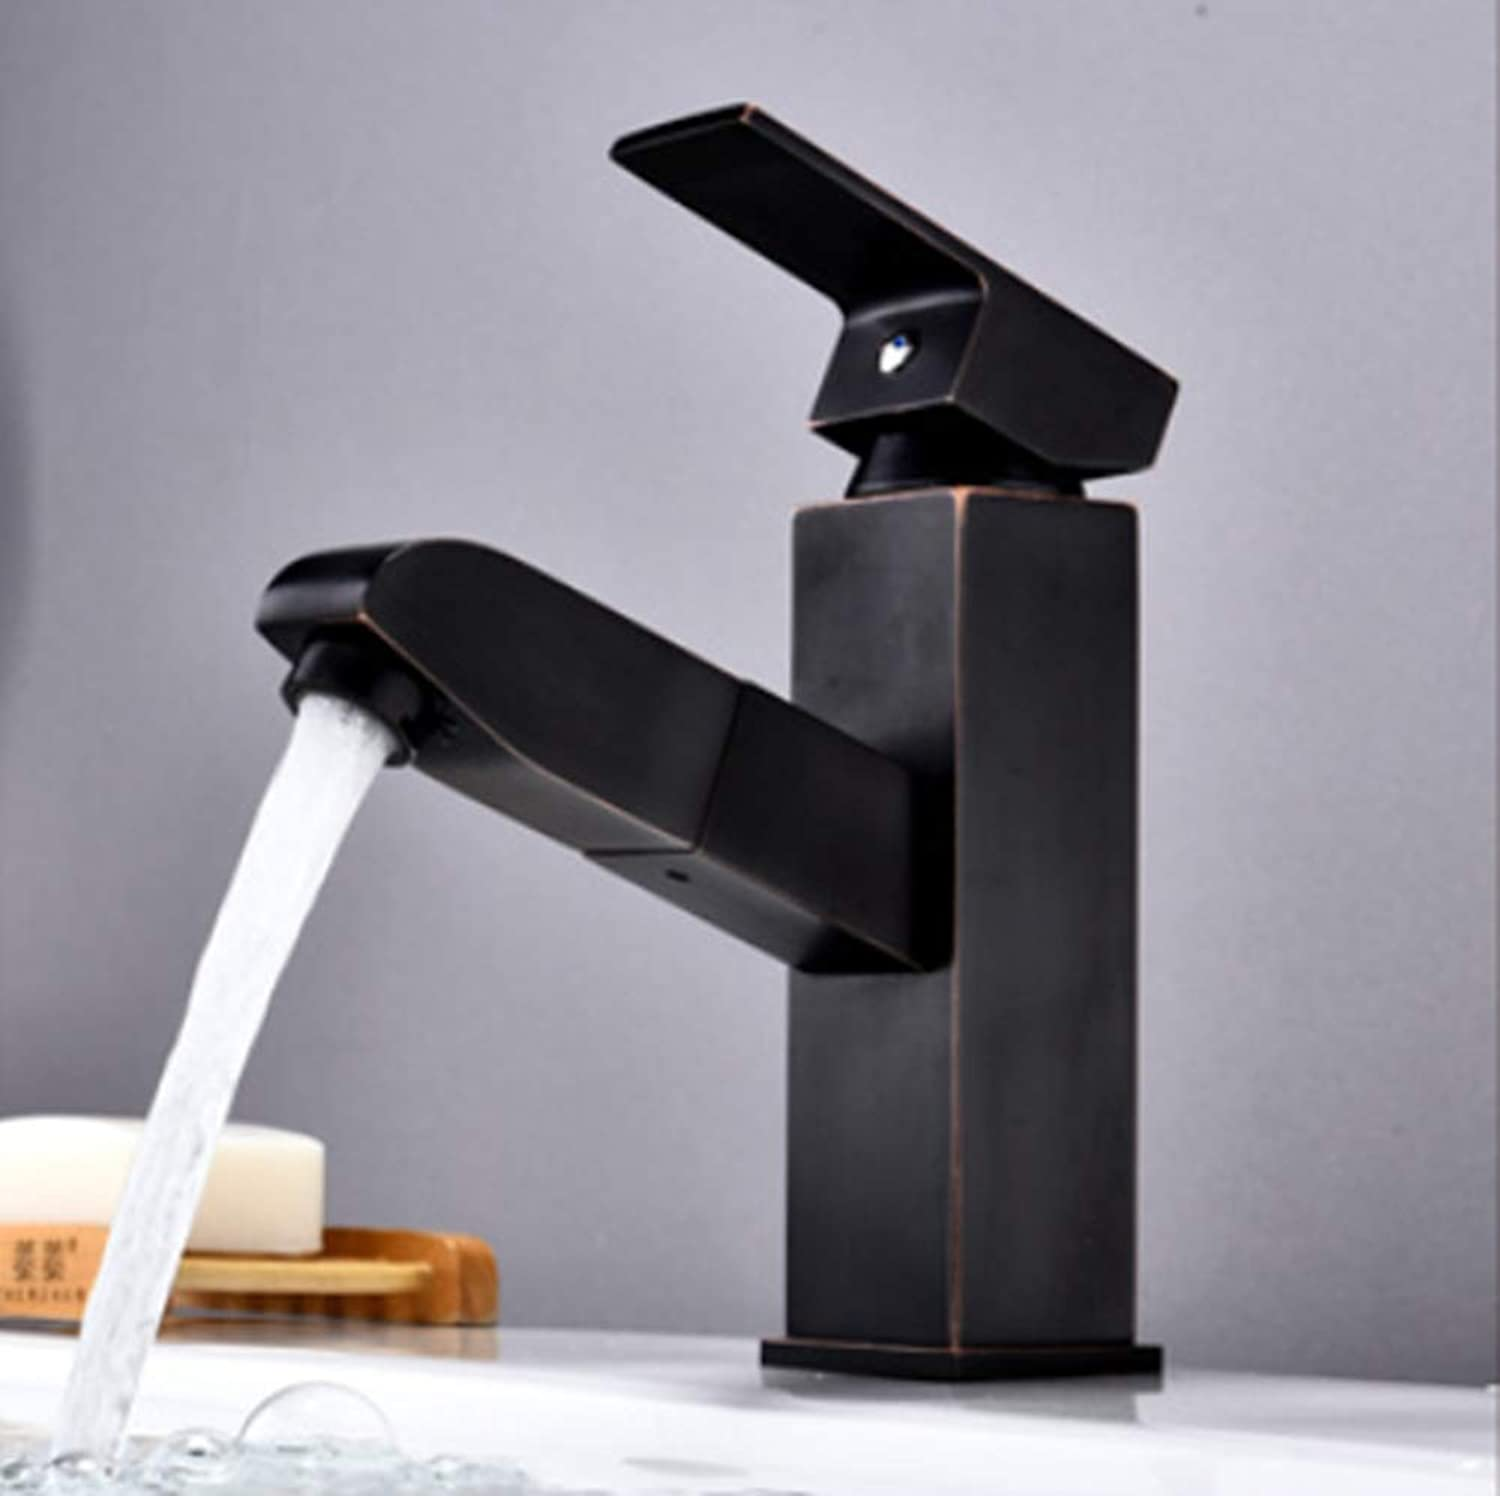 Retro Minimalism Bathroom Faucet Pull Out Sink Faucet Brass Single Lever Hot And Cold Water Mixing Chrome Black